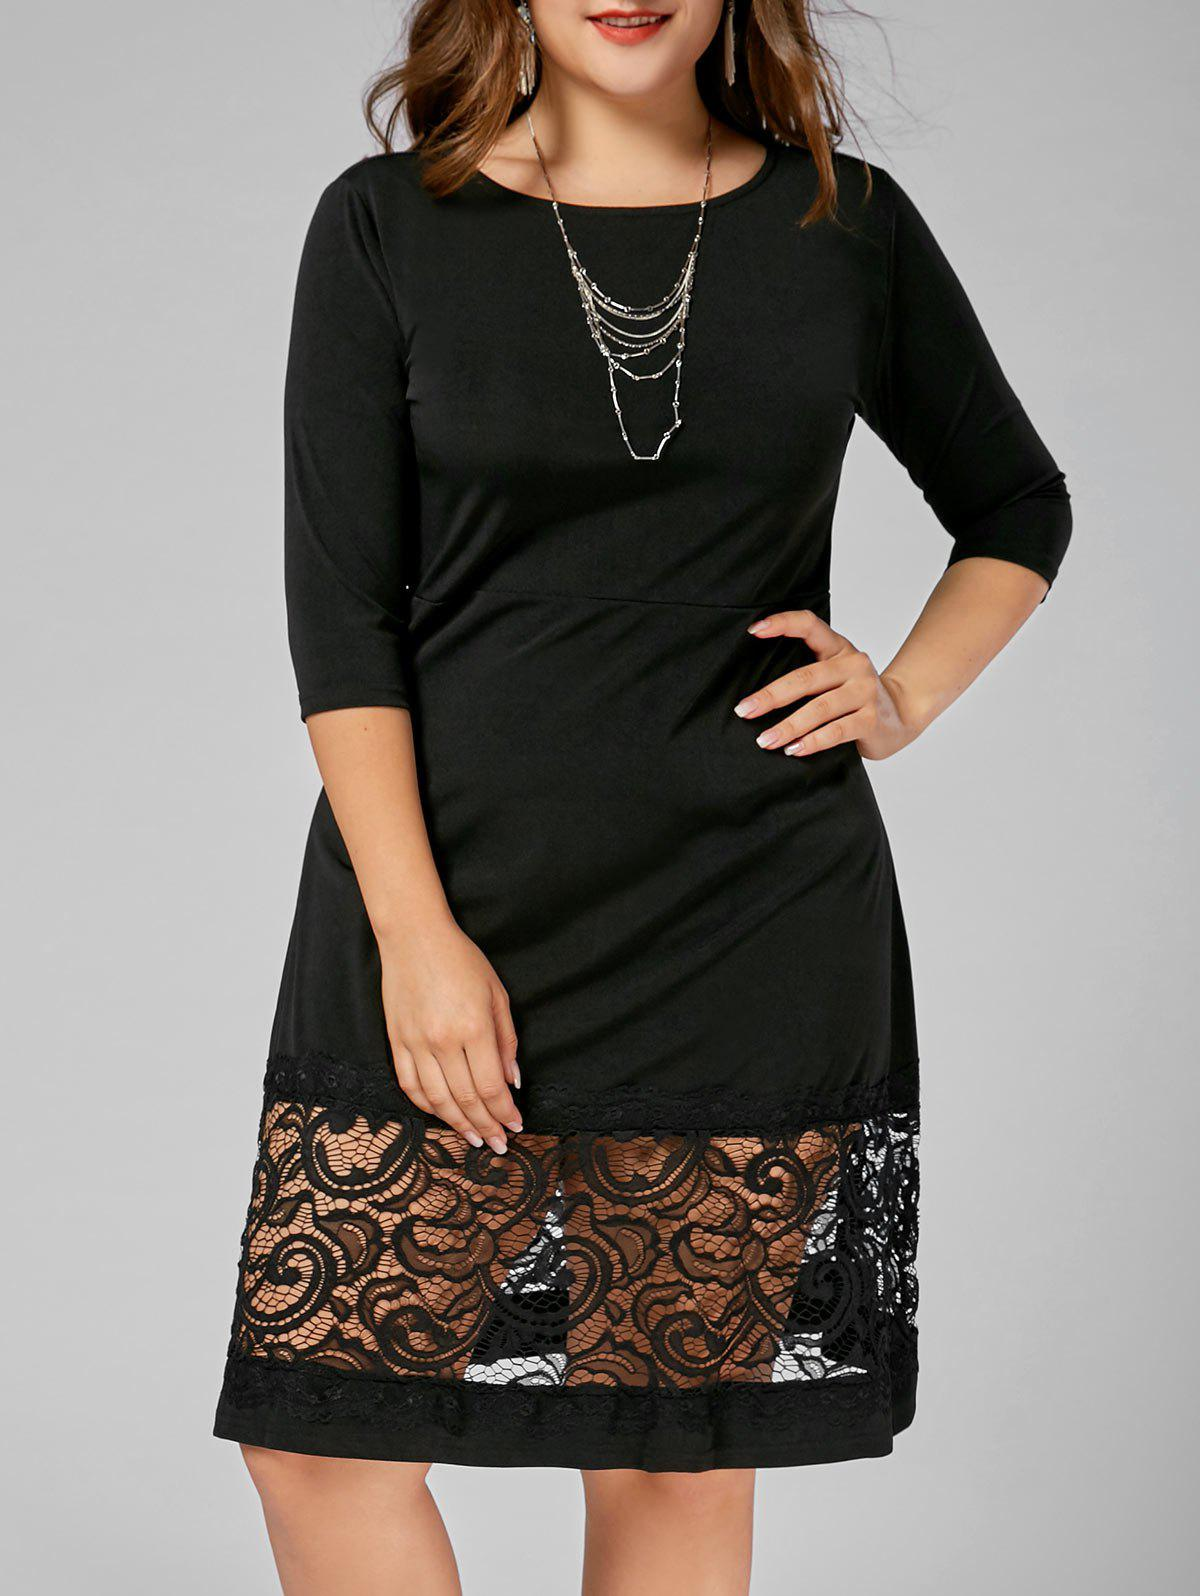 Lace Panel Plus Size A Line Dress - BLACK 3XL